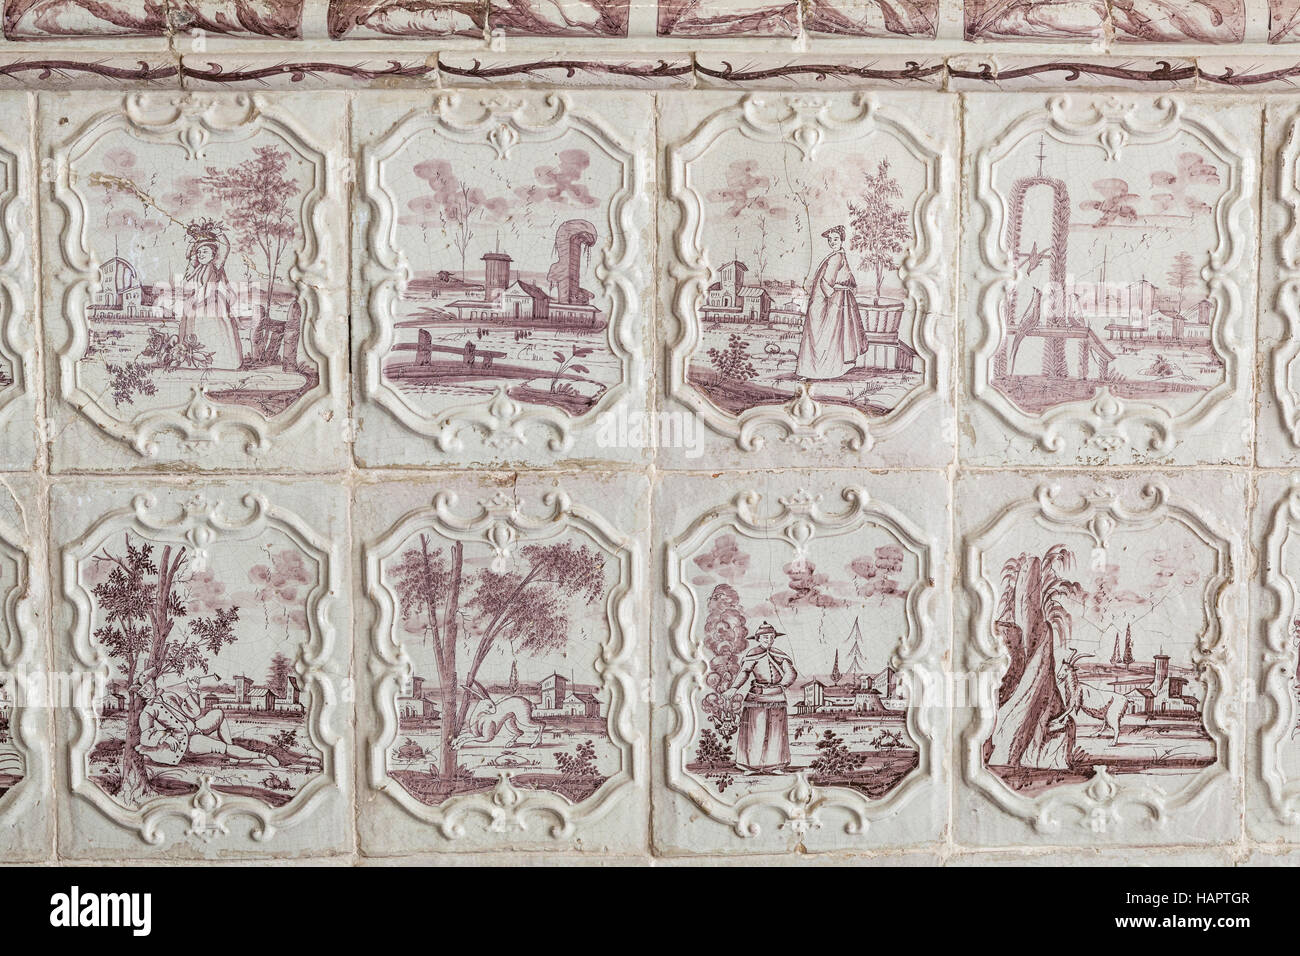 A ceramic stove ordered by Marshall de Saxe in the 18th century to keep the lower rooms warm in the chateau de Chambord. - Stock Image